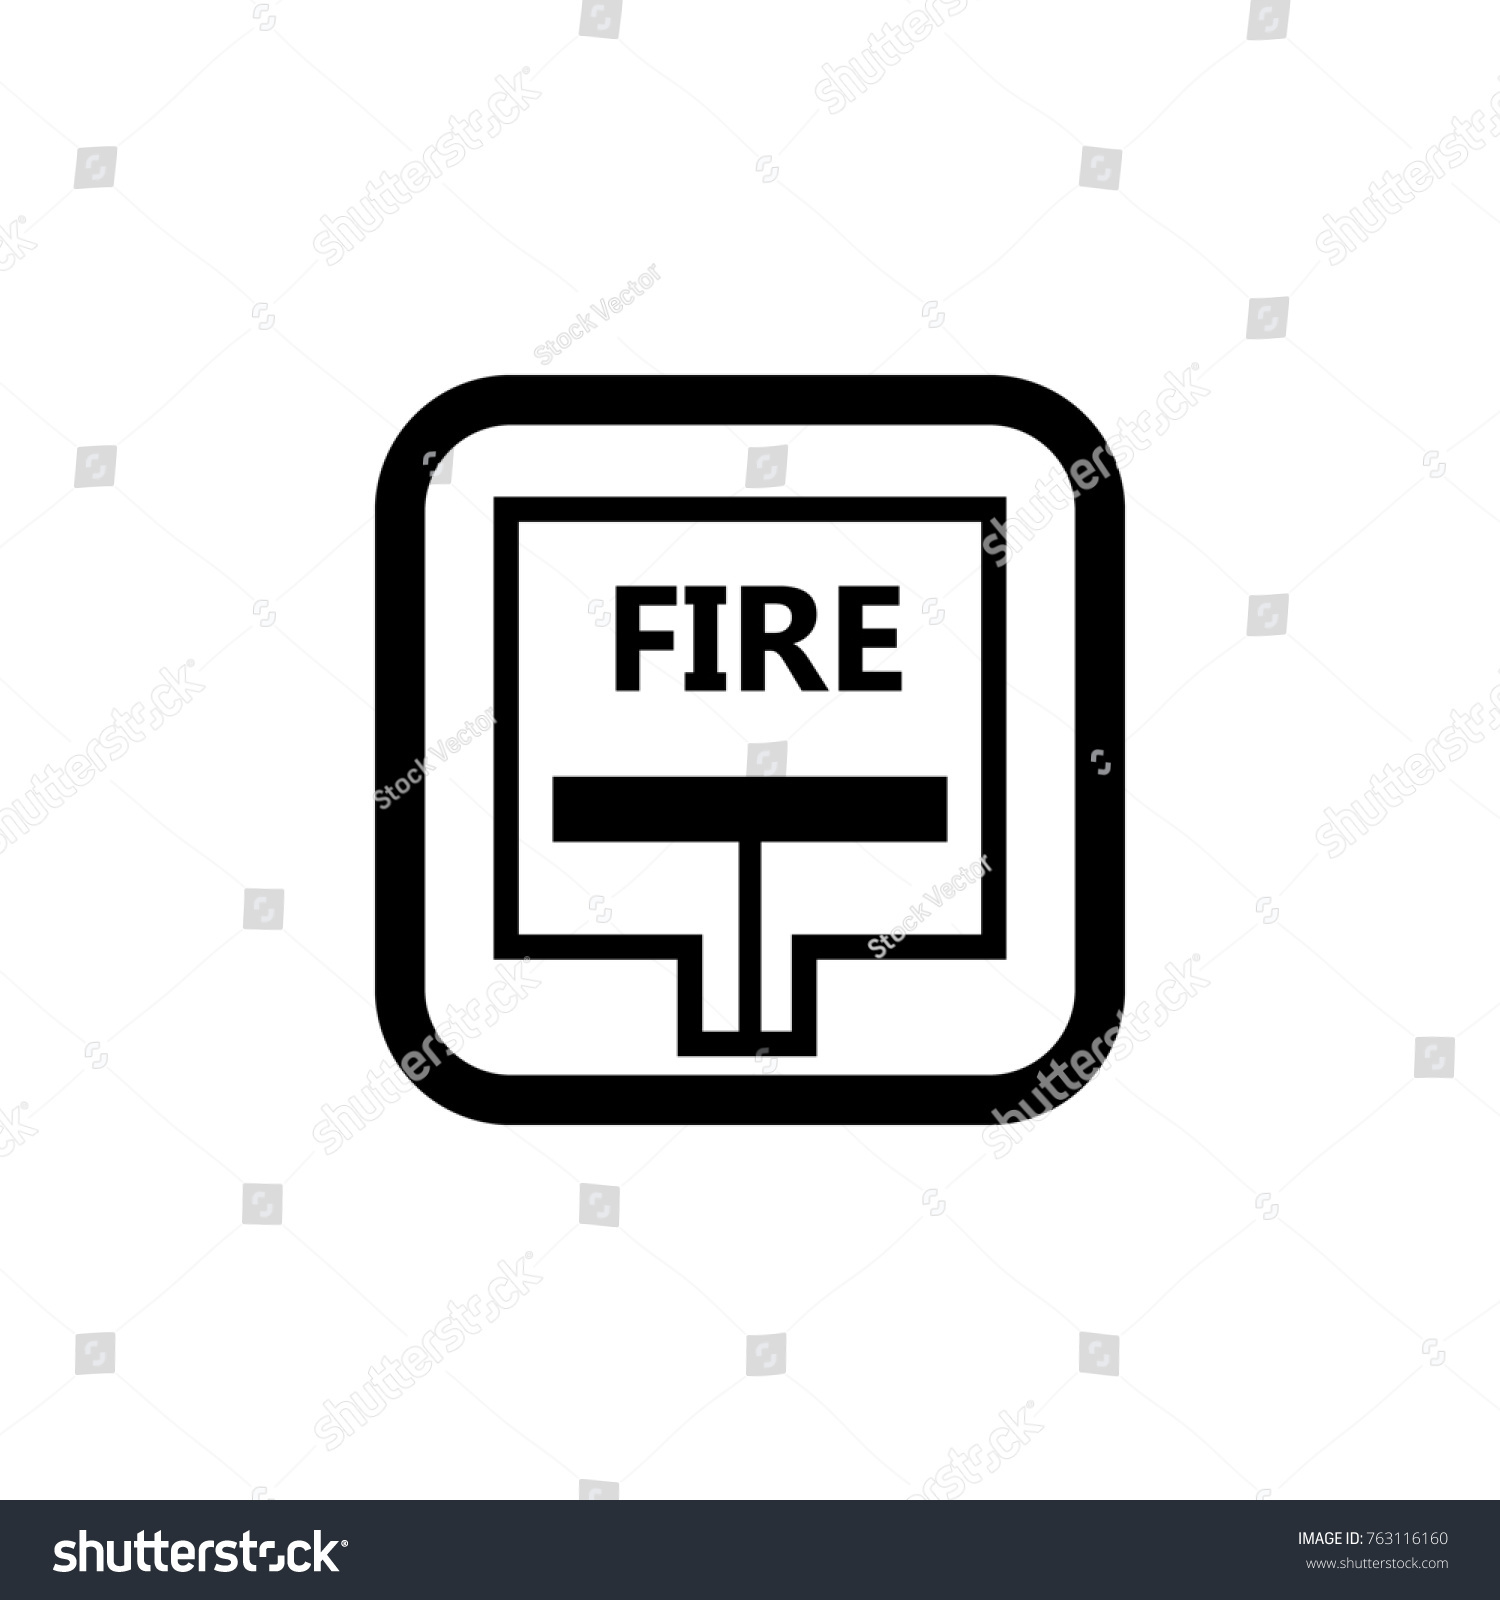 Hydrant point icon fireman element icon stock illustration 763116160 hydrant point icon fireman element icon premium quality graphic design signs outline buycottarizona Choice Image